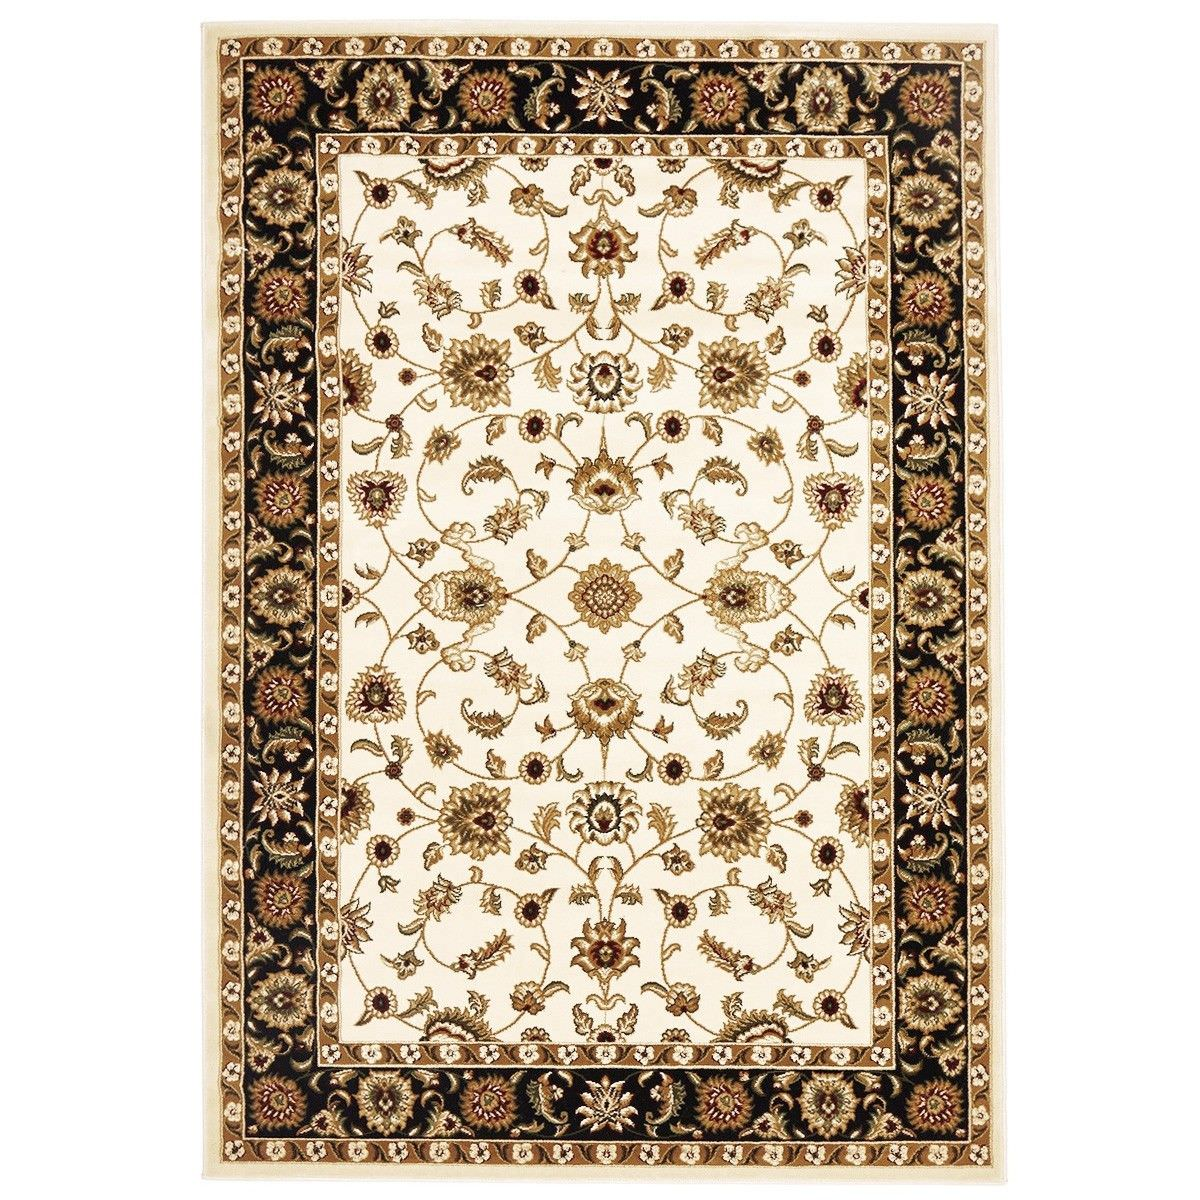 Sydney Classic Turkish Made Oriental Rug, 150x80cm, Ivory / Black